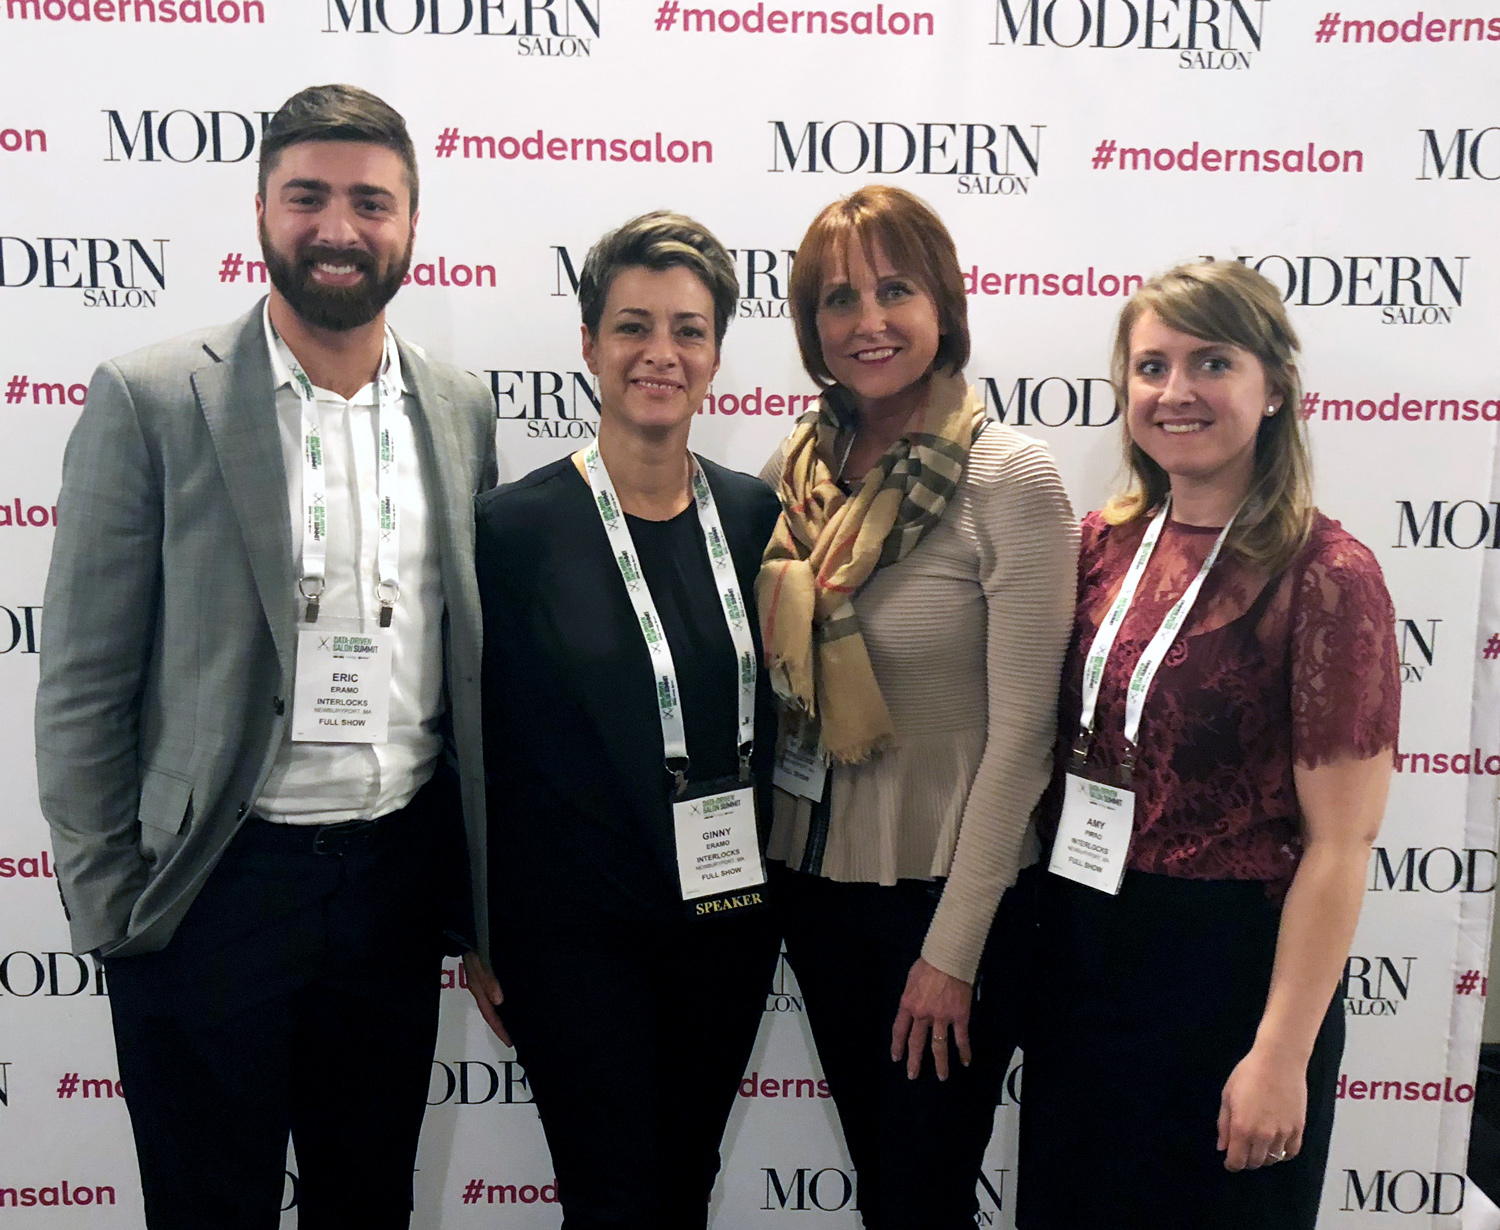 INTERLOCKS marketing and management team at Data-Driven Salon Summit 2018